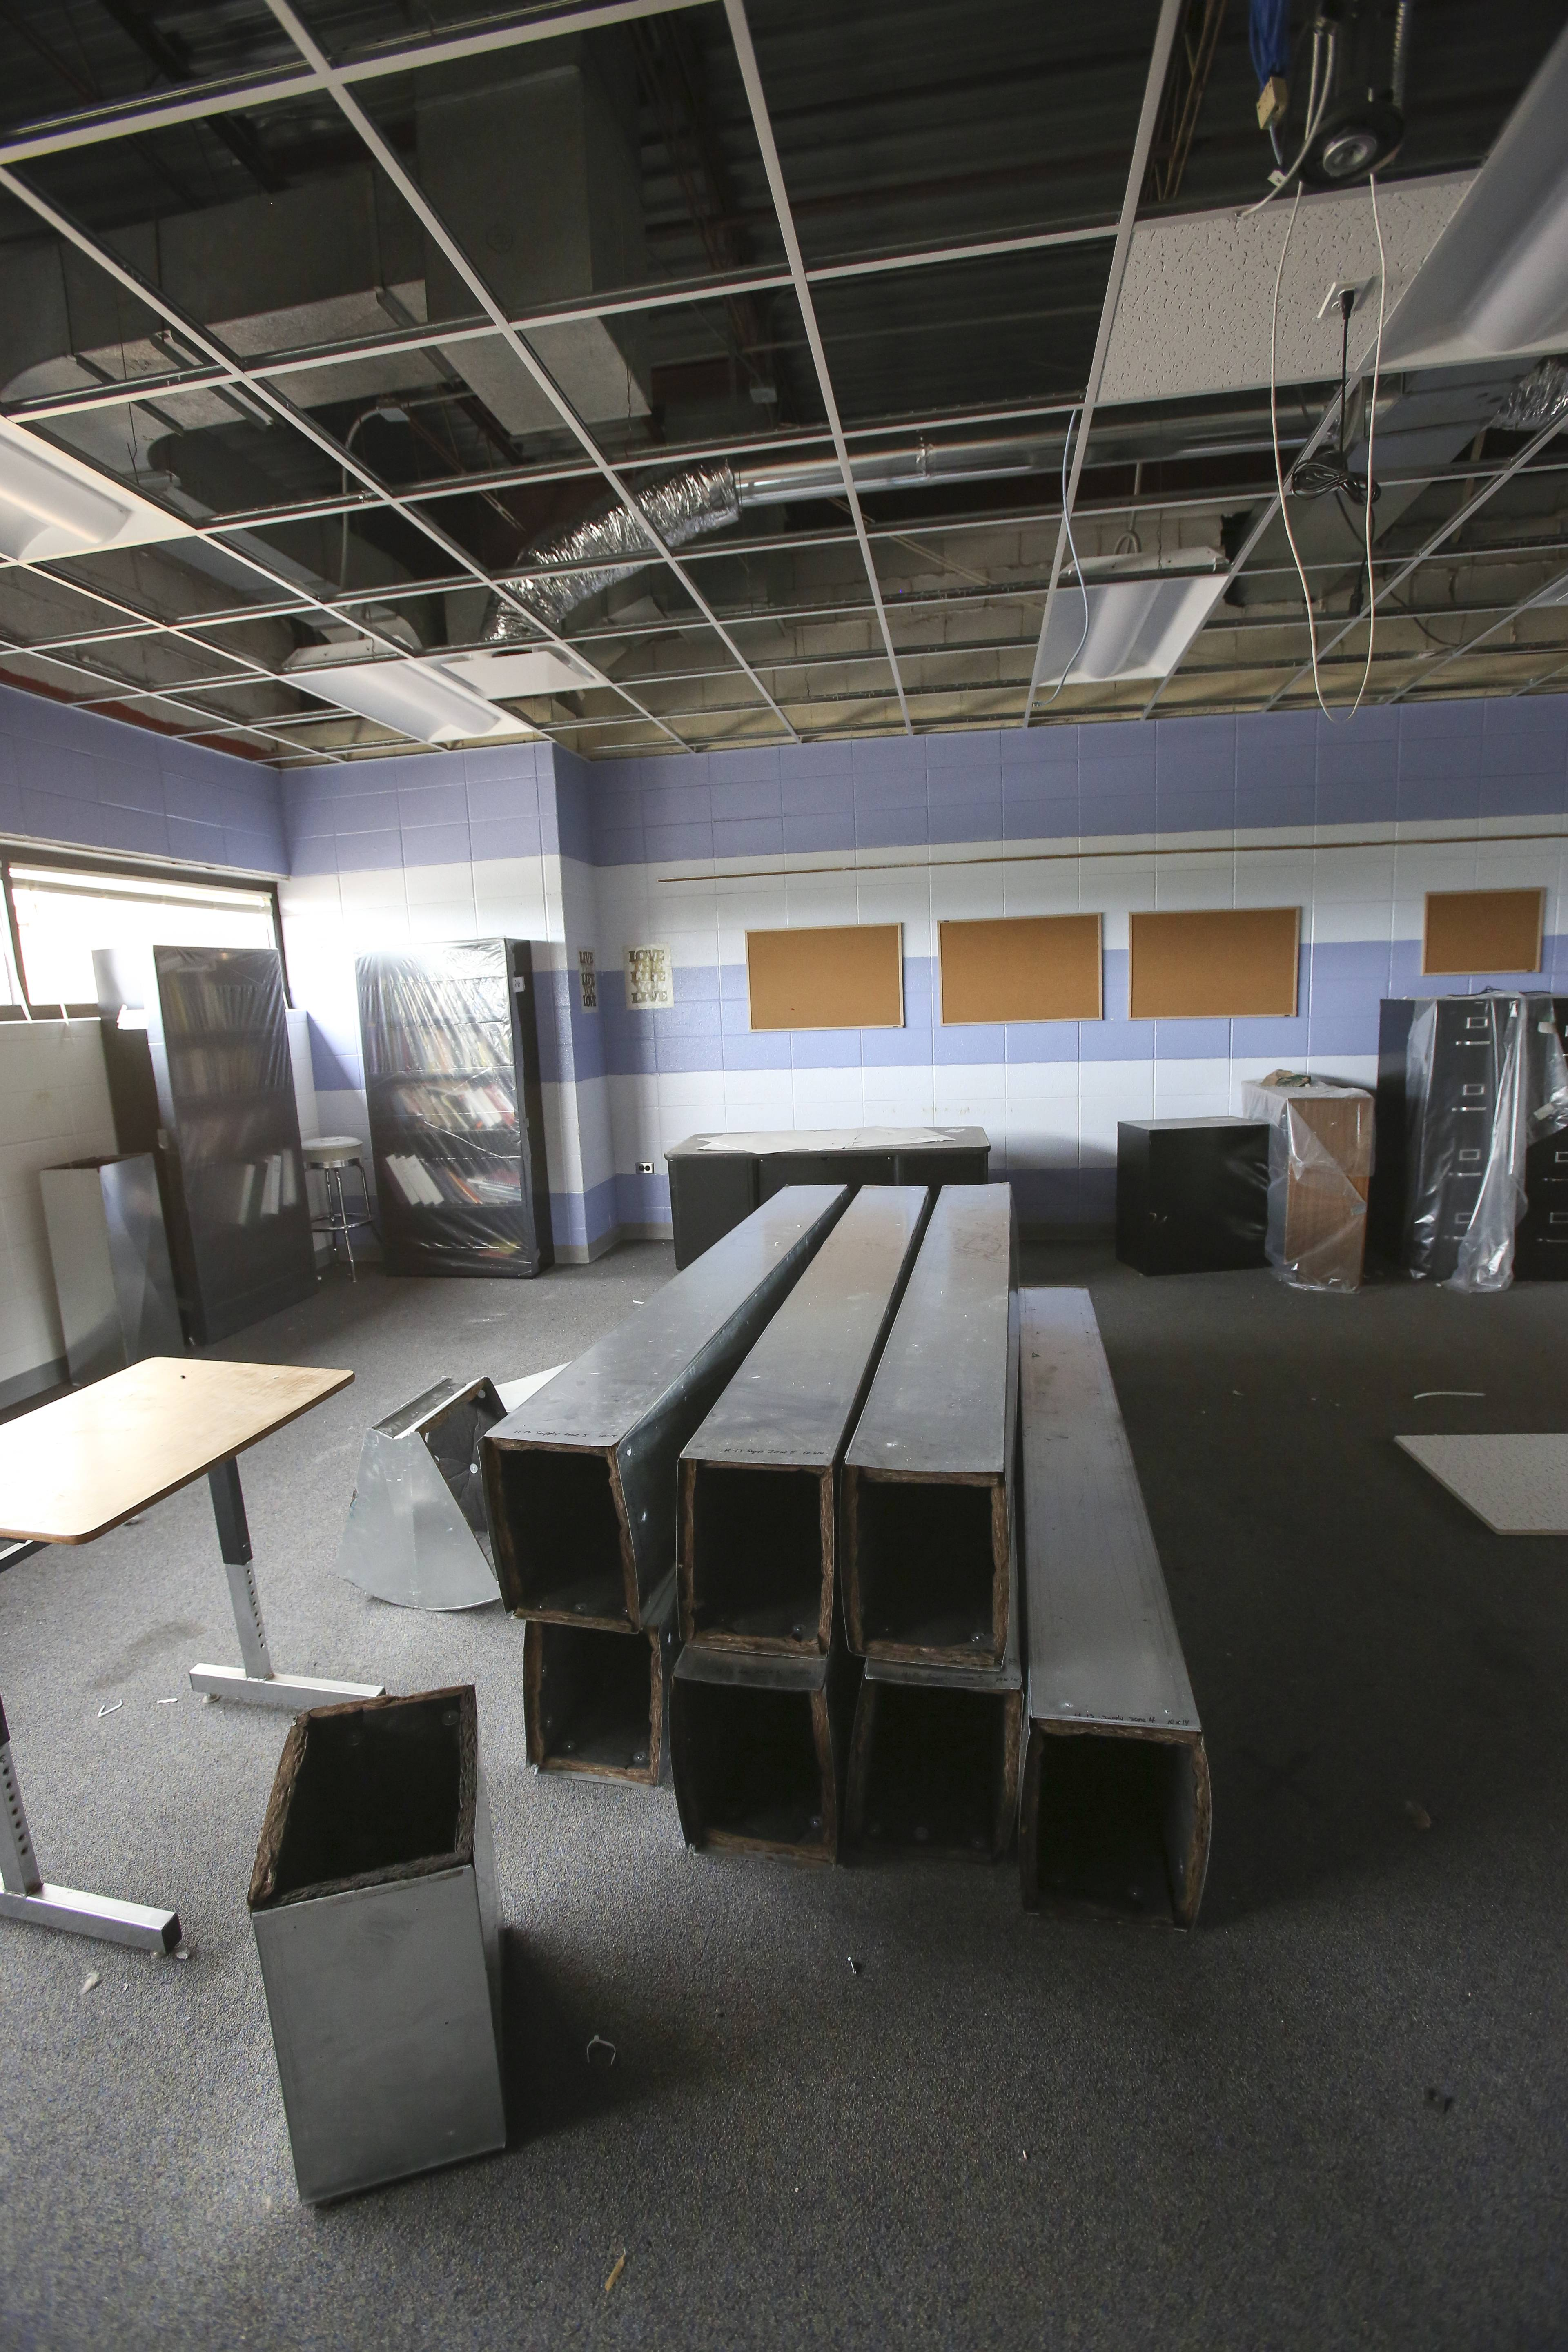 Old ducts sit in a classroom as they are replaced as part of ongoing construction at Naperville North High School.